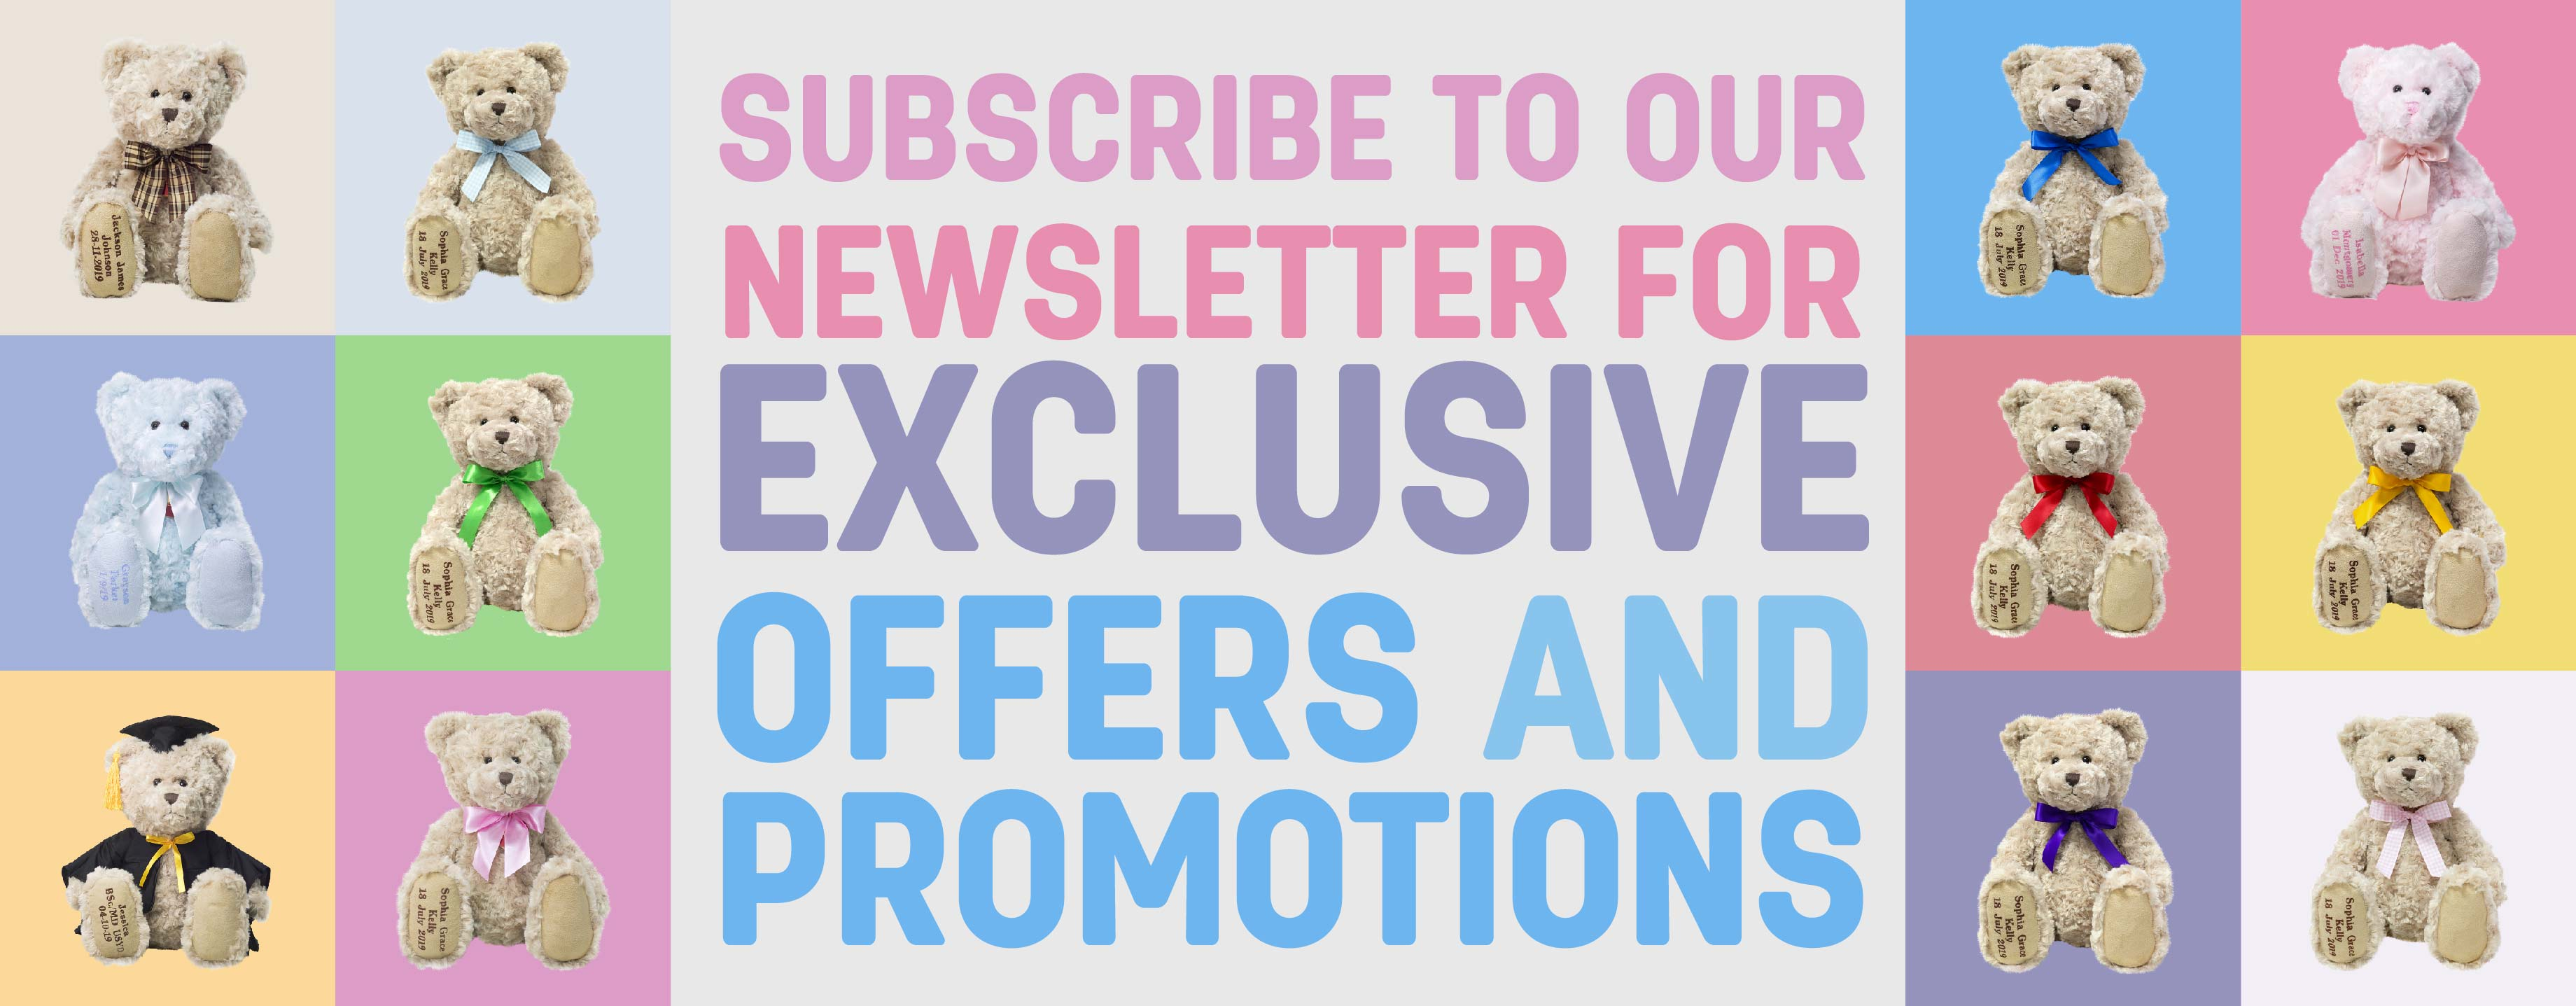 Subscribe to Newsletter_banner_Subscribe Now - Banner 2